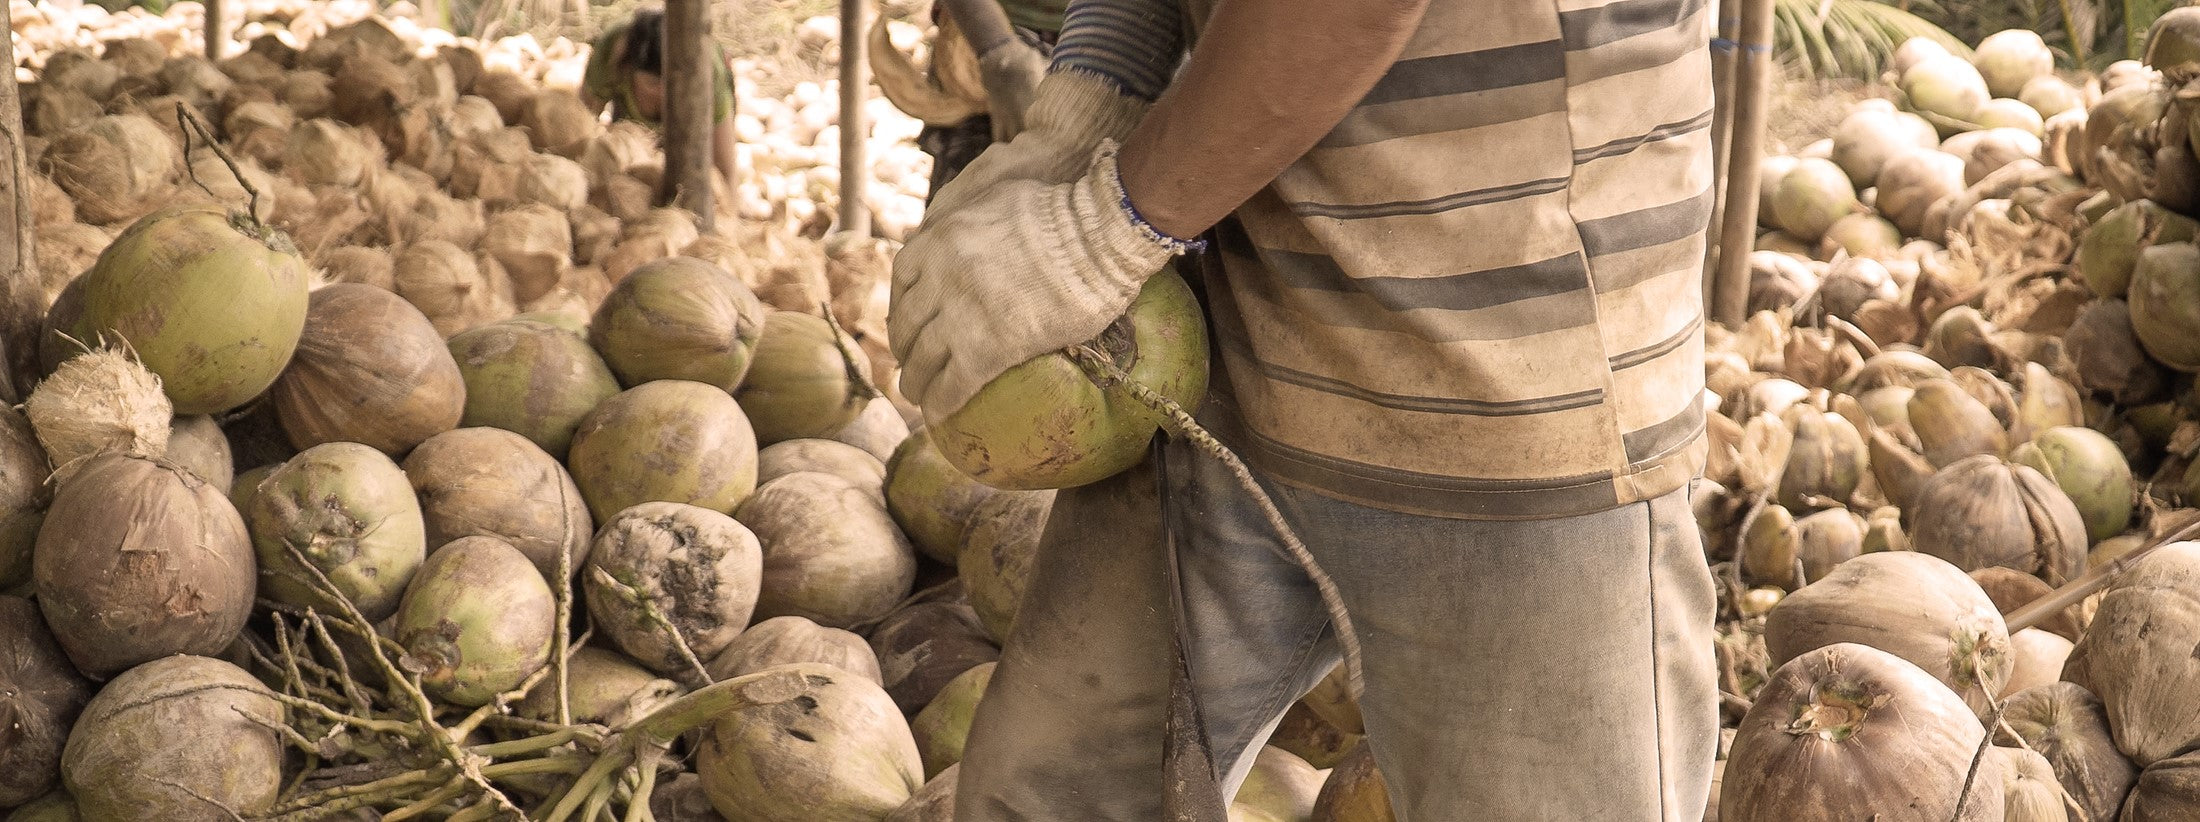 A Vietnamese man removes the husk from a coconut.